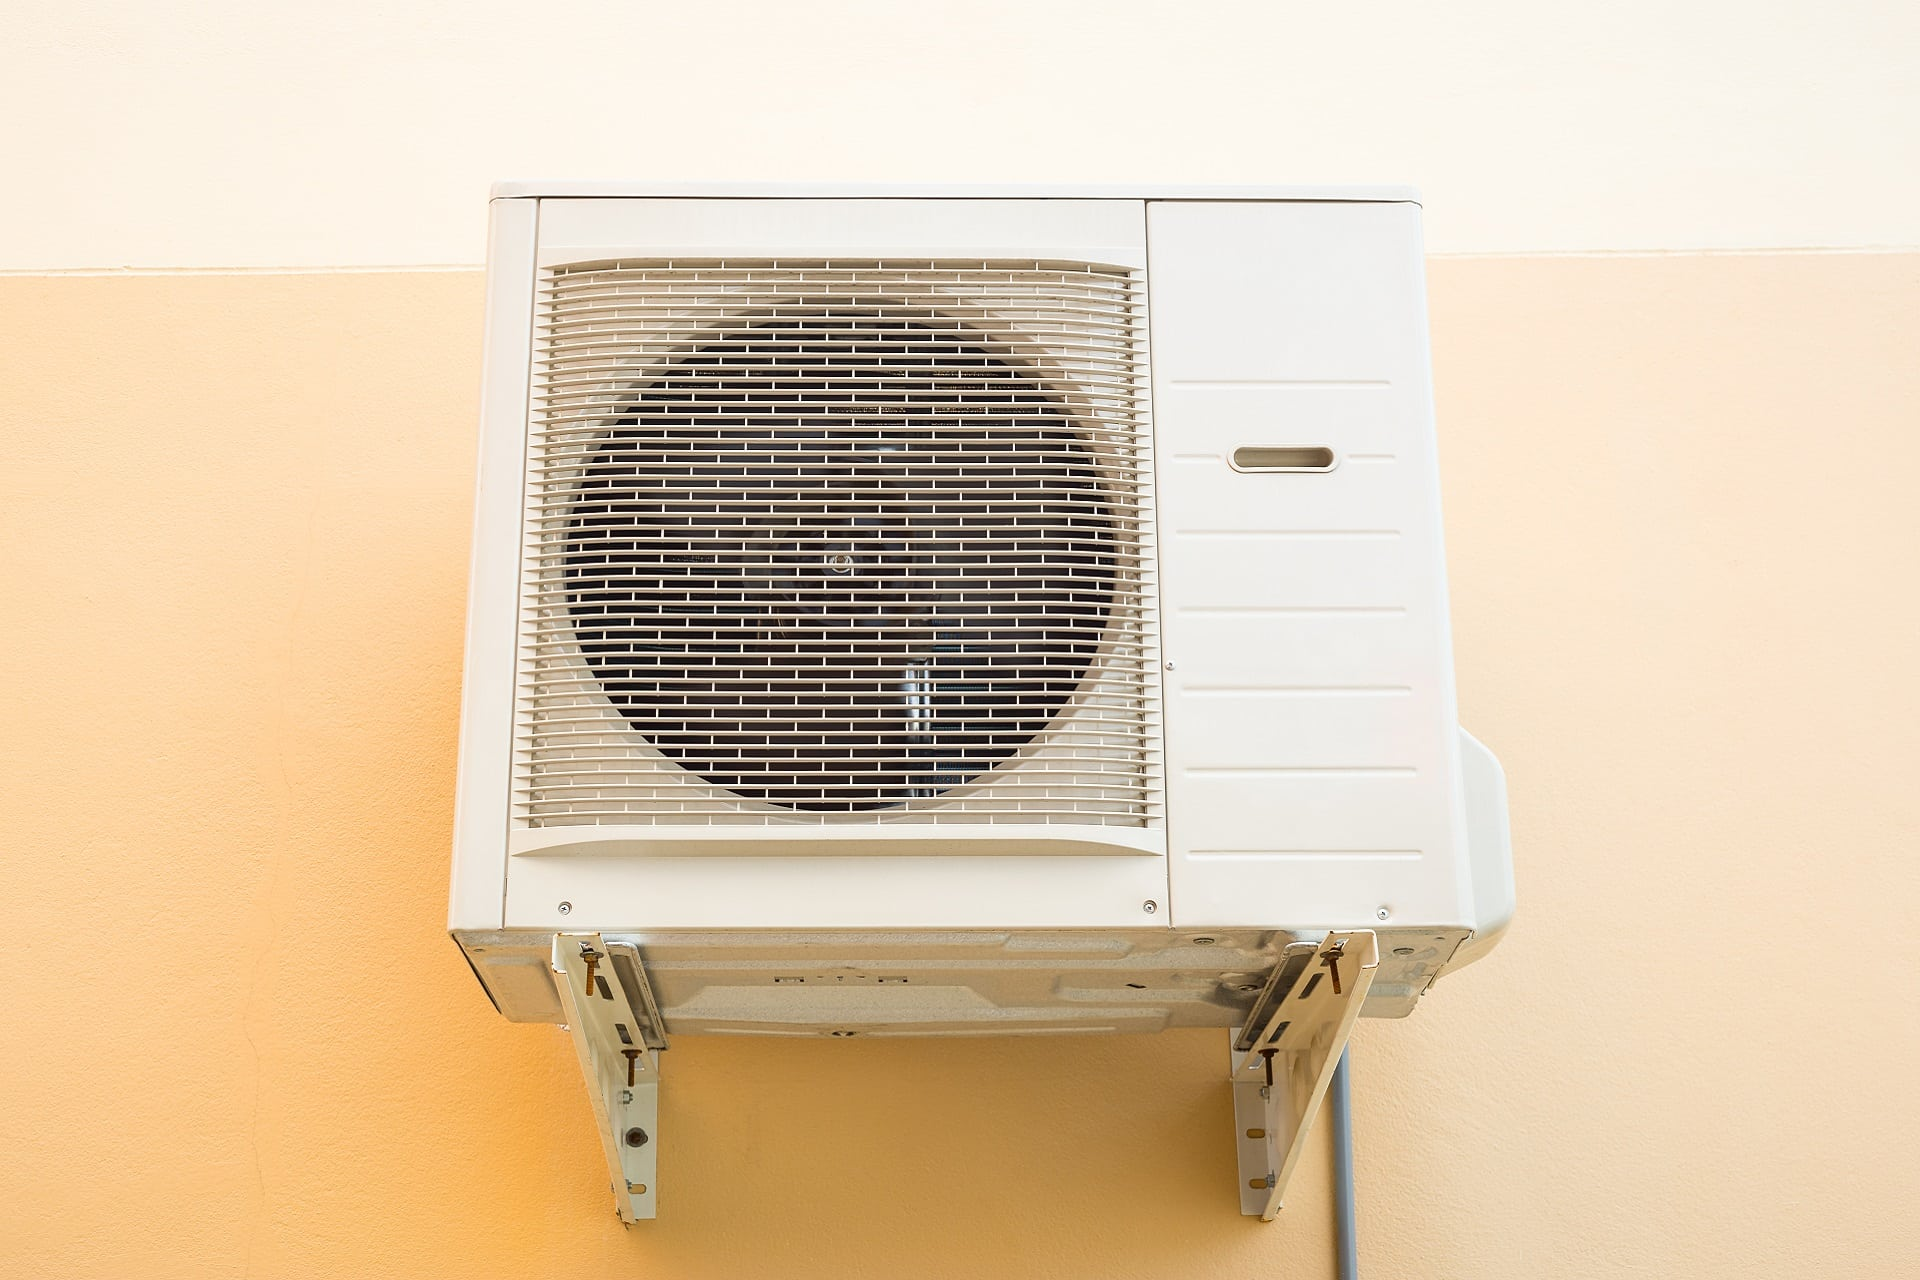 air conditioning units free from debris